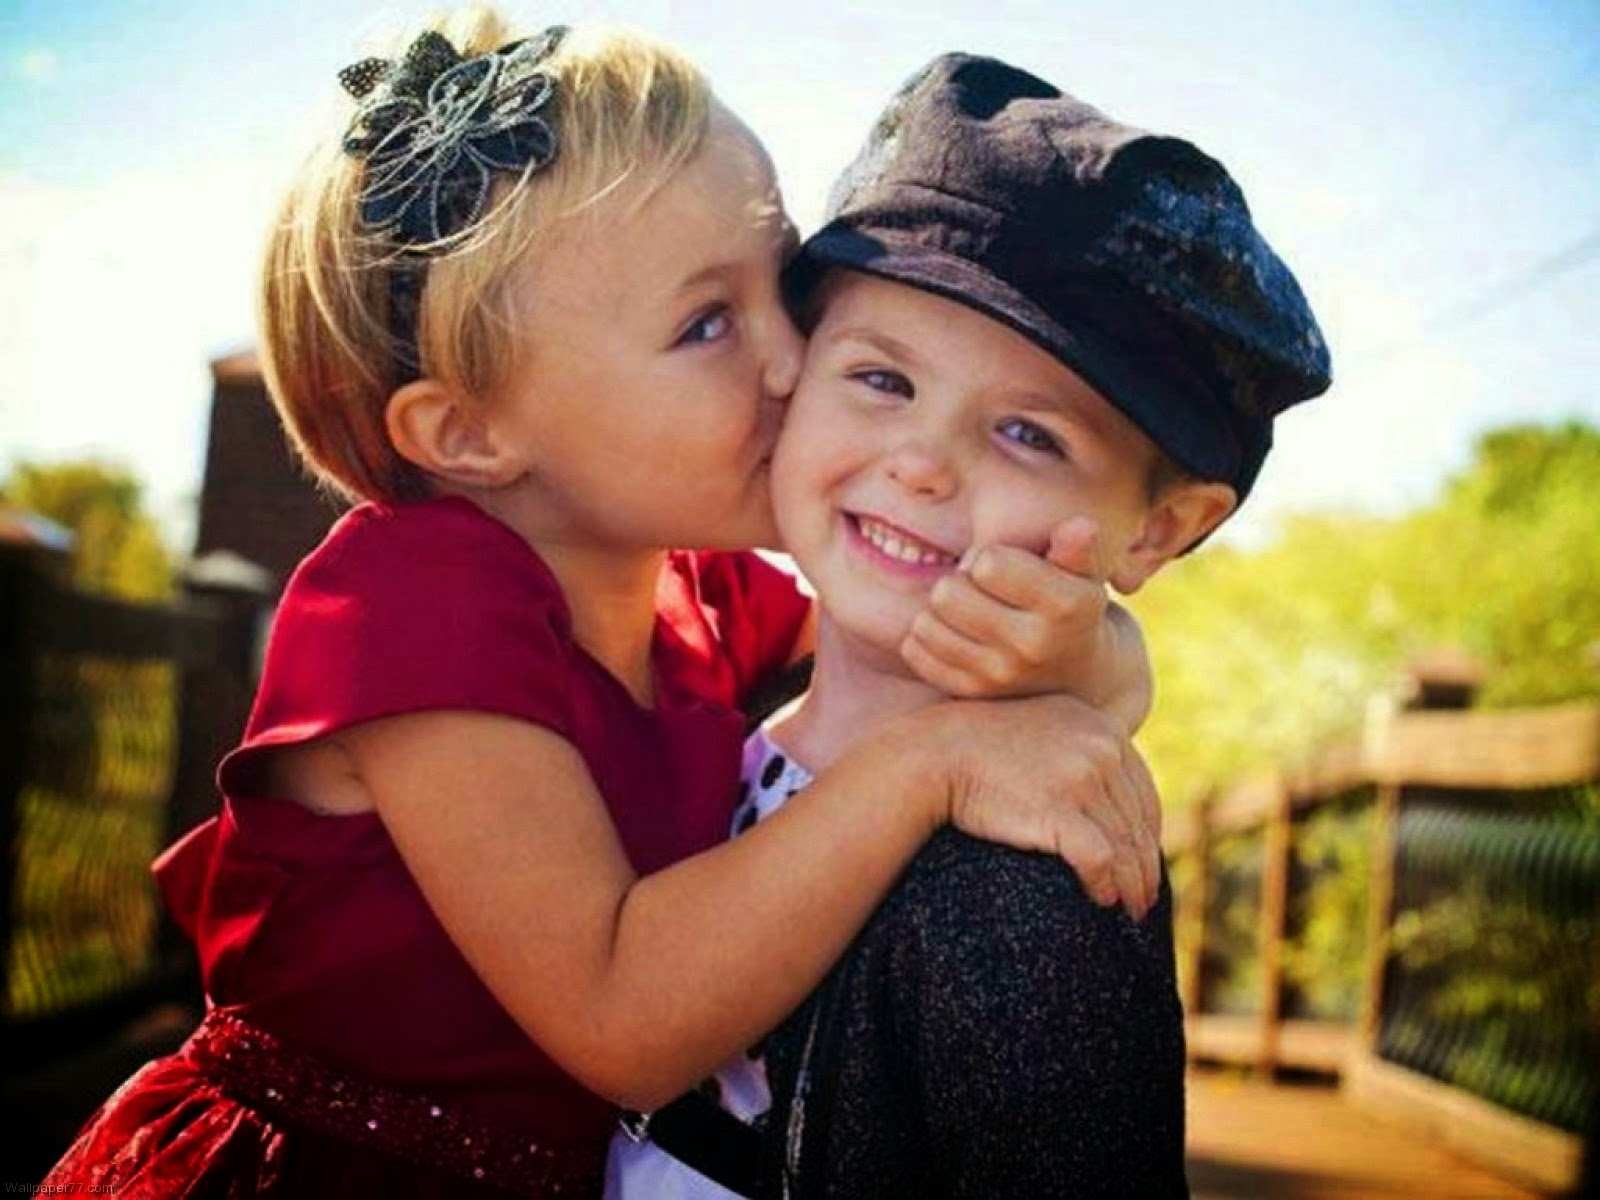 Happy kiss day cute images ,sms messages and hd wallpaper ...